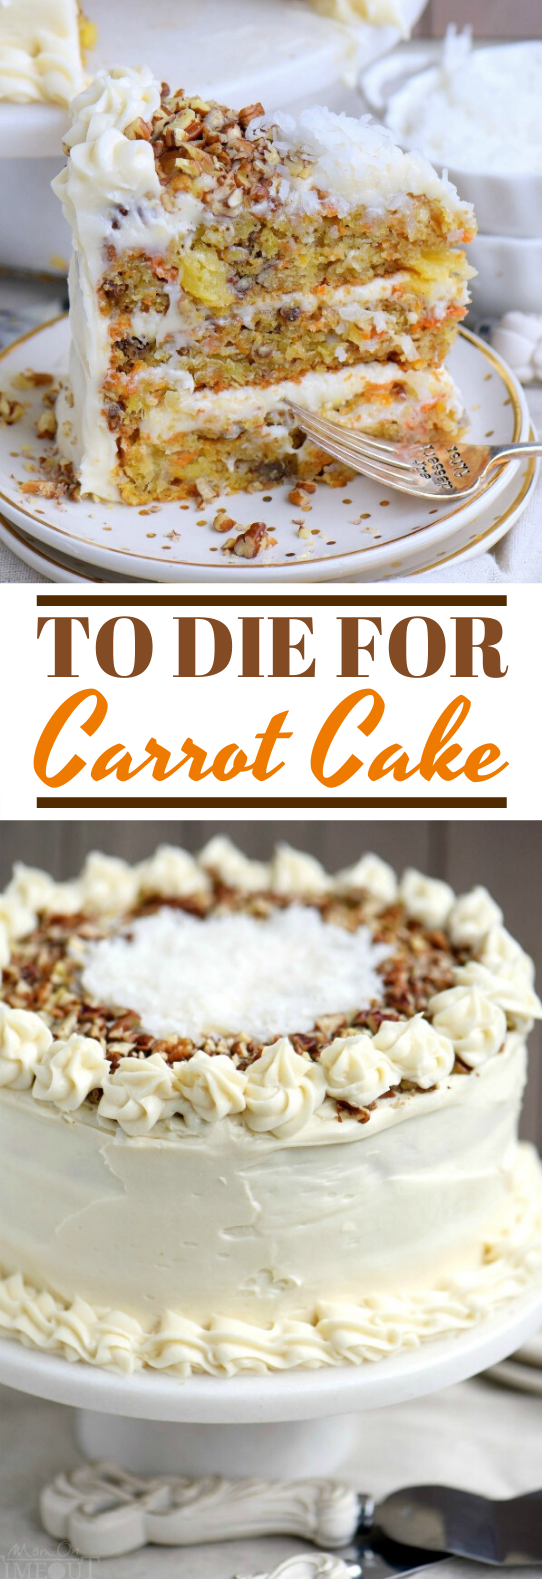 To Die For Carrot Cake #cake #desserts #baking #recipes #frosting